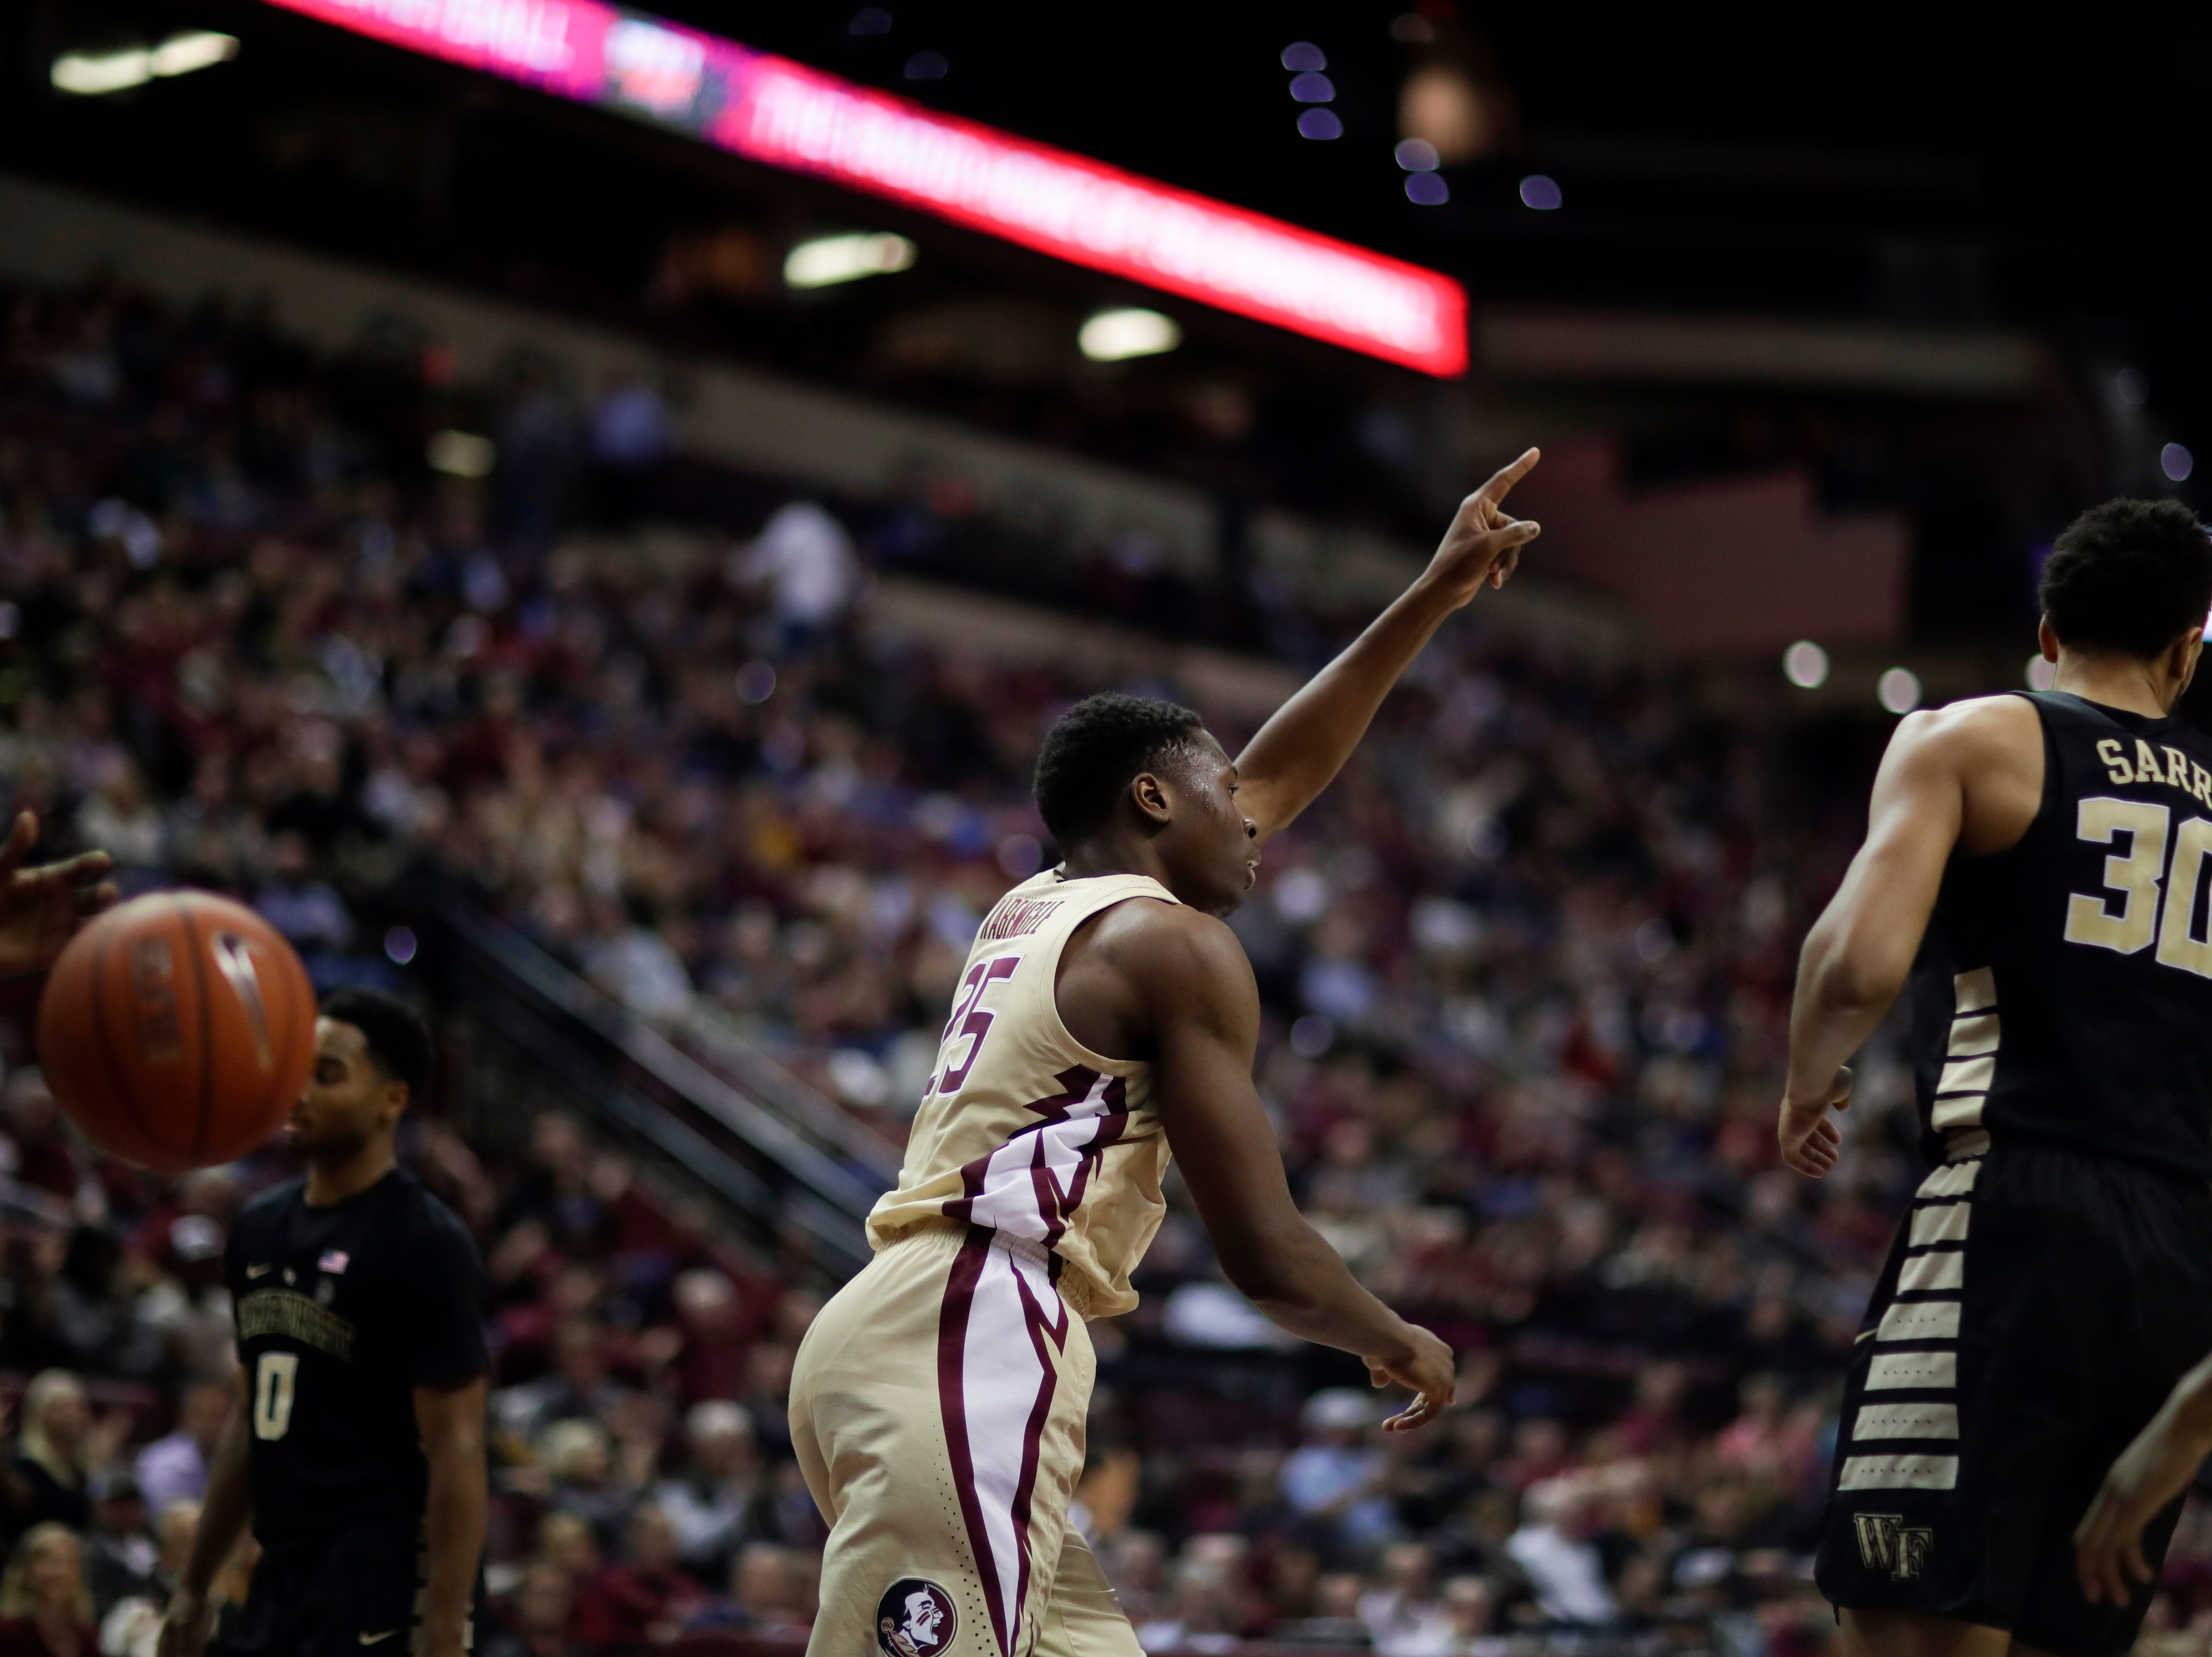 Florida State Seminoles forward Mfiondu Kabengele (25) celebrates after he scores during a game between FSU and Wake Forest at the Donald L. Tucker Civic Center Wednesday, Feb. 13, 2019.